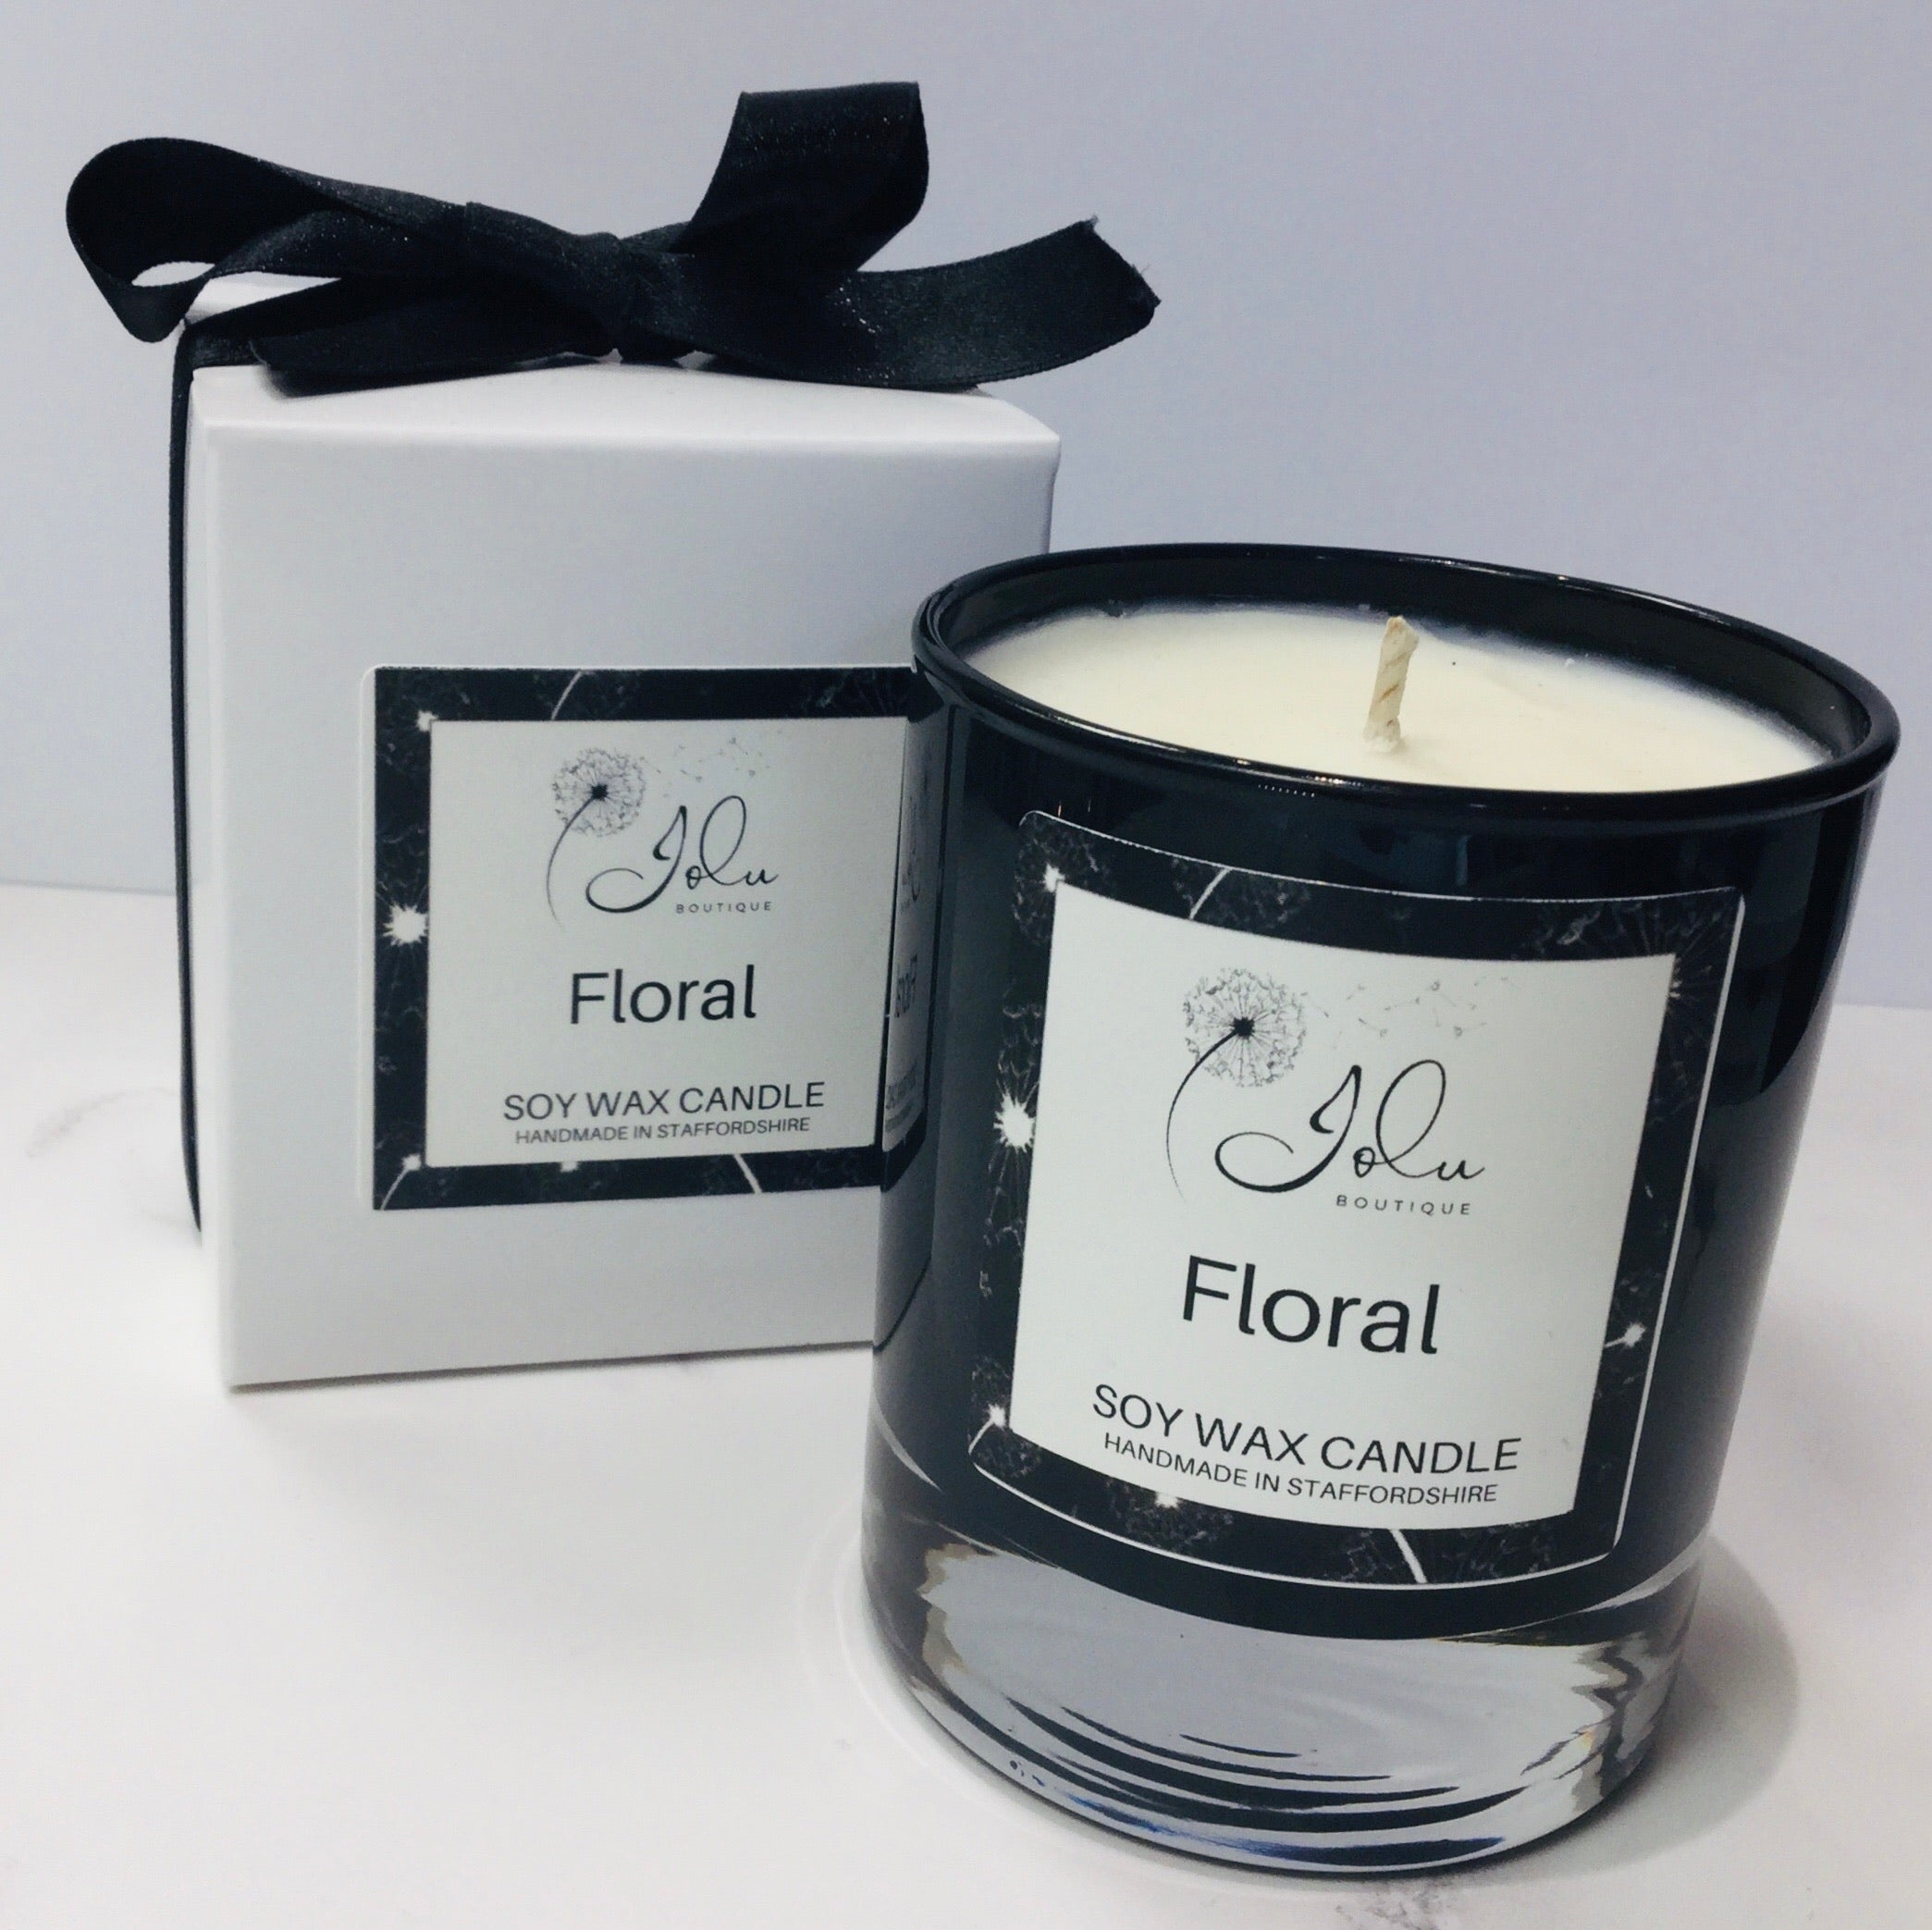 Jolu Boutique Floral Soy Wax Candle - Boxed Glass